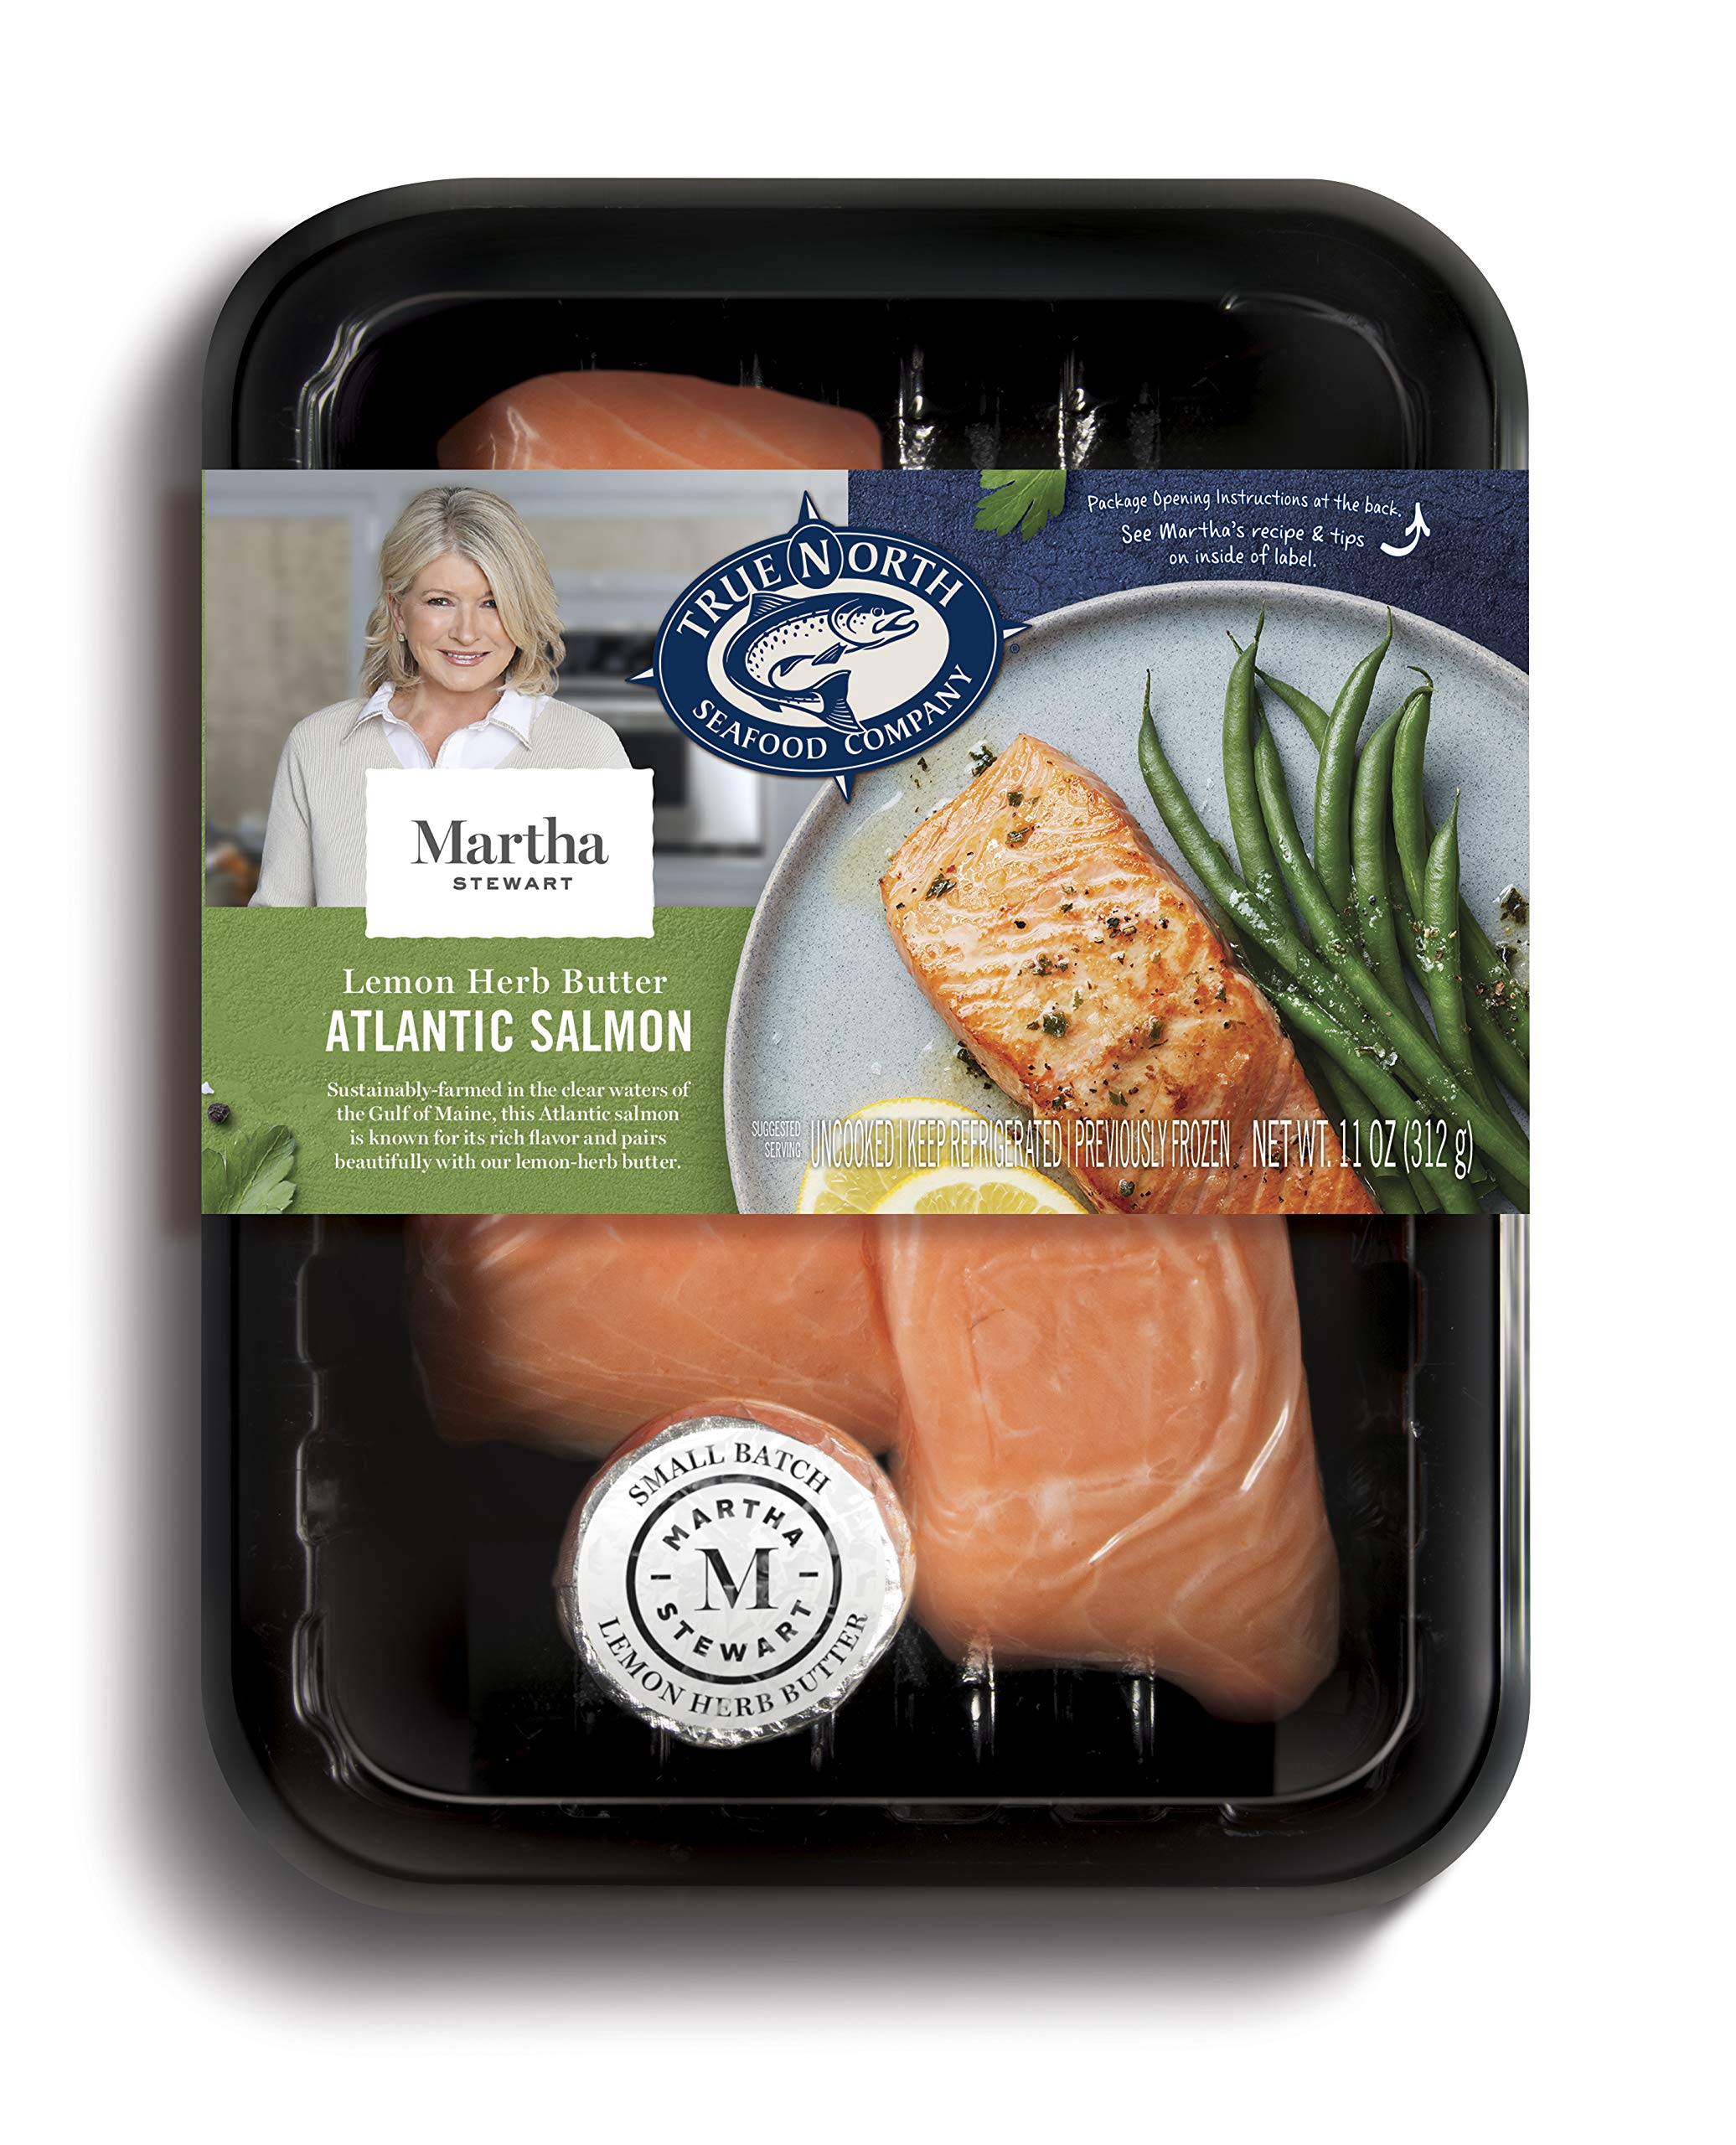 Martha Stewart for True North Seafood: Simple and Easy Sockeye Salmon with Miso Butter and Atlantic Salmon with Lemon Herb Butter - (Pack of 4) 11 oz. Trays by True North Seafood Company (Image #4)